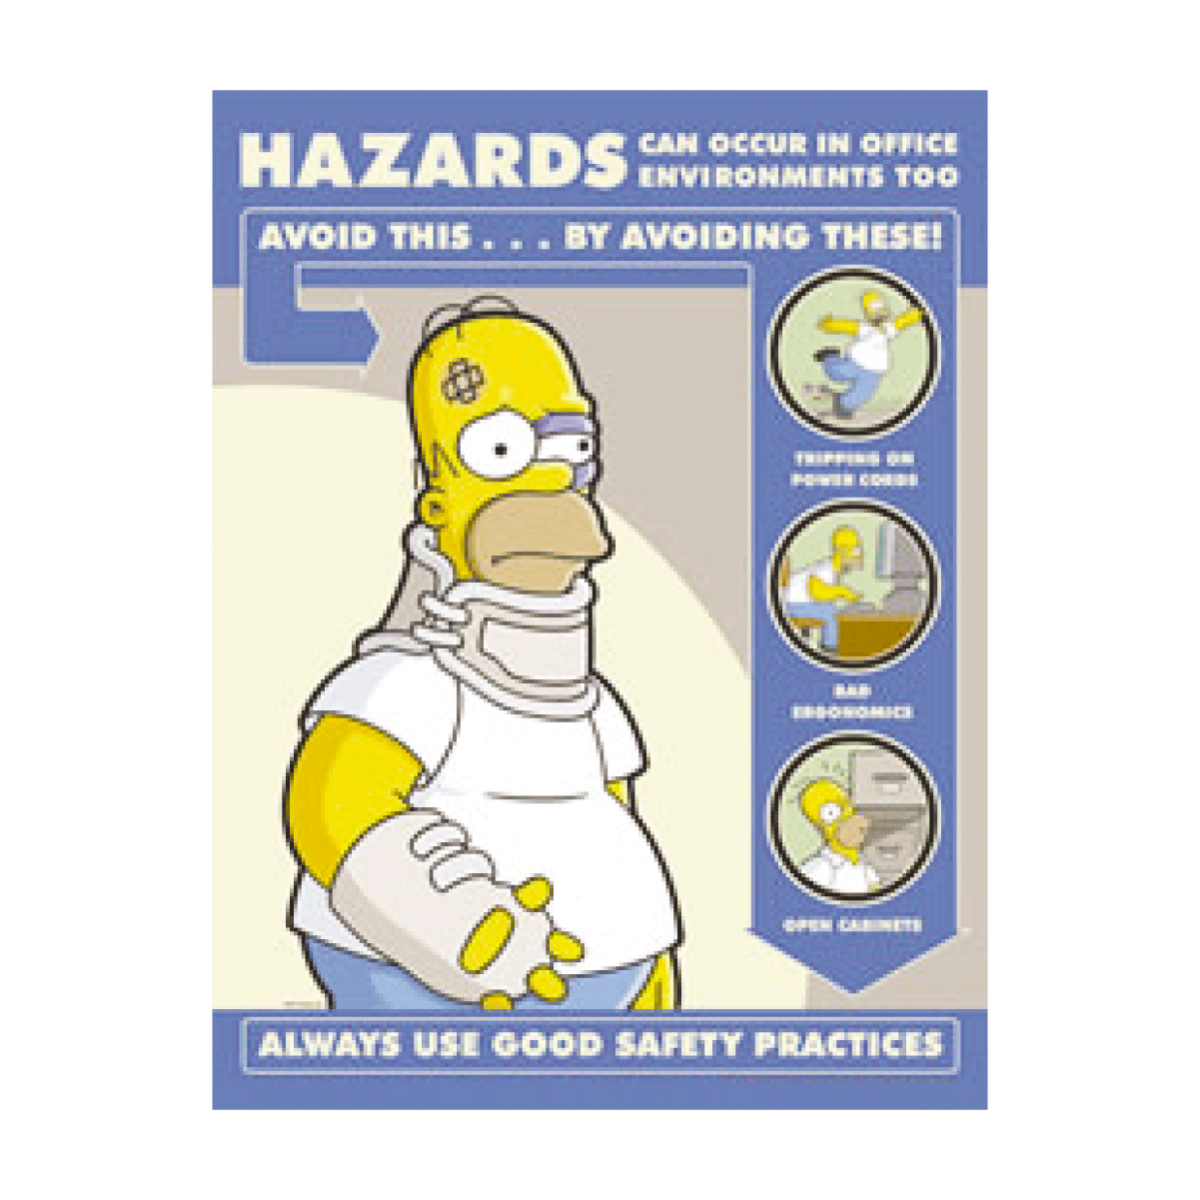 simpsons poster Simpsons Hazards In Office Environment